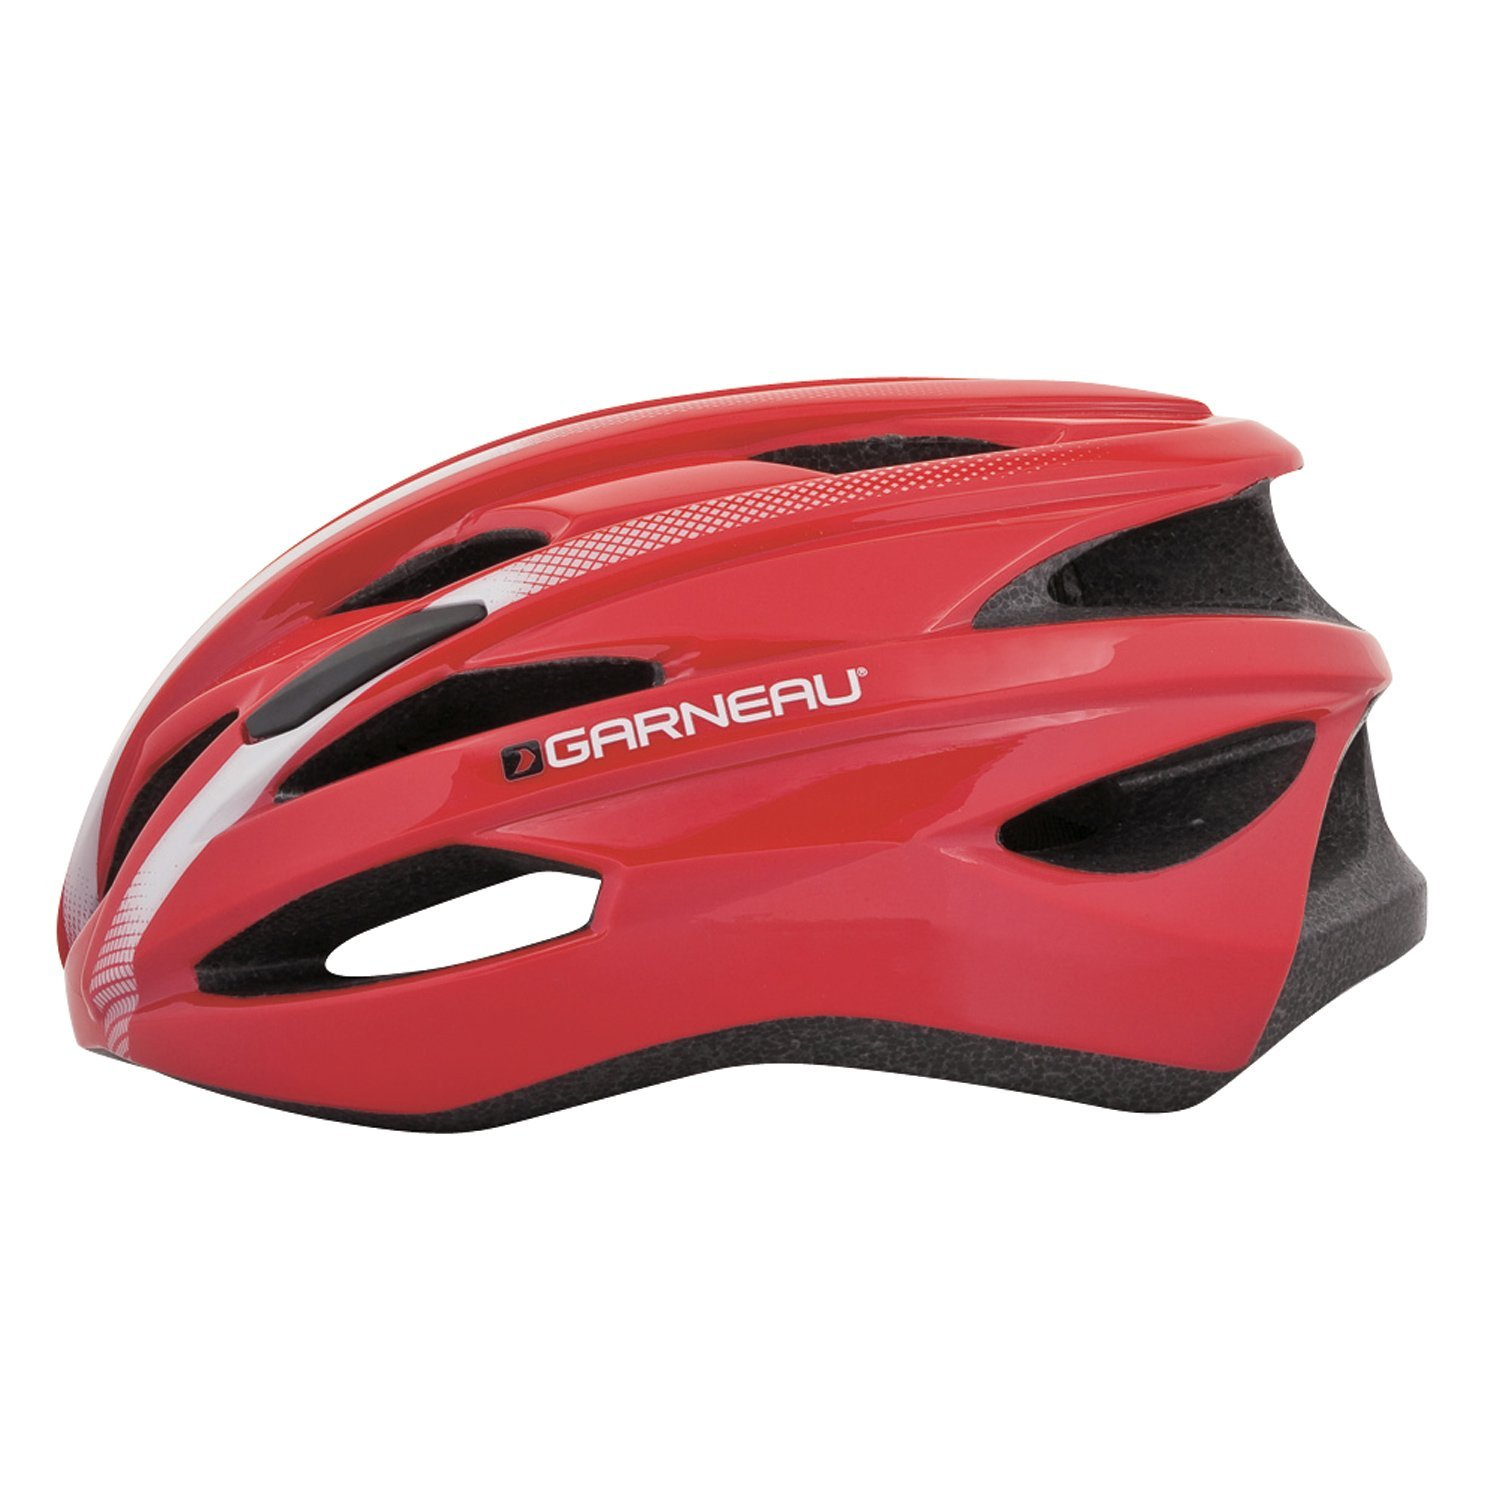 Best Selling Garneau Bicycle Helmets